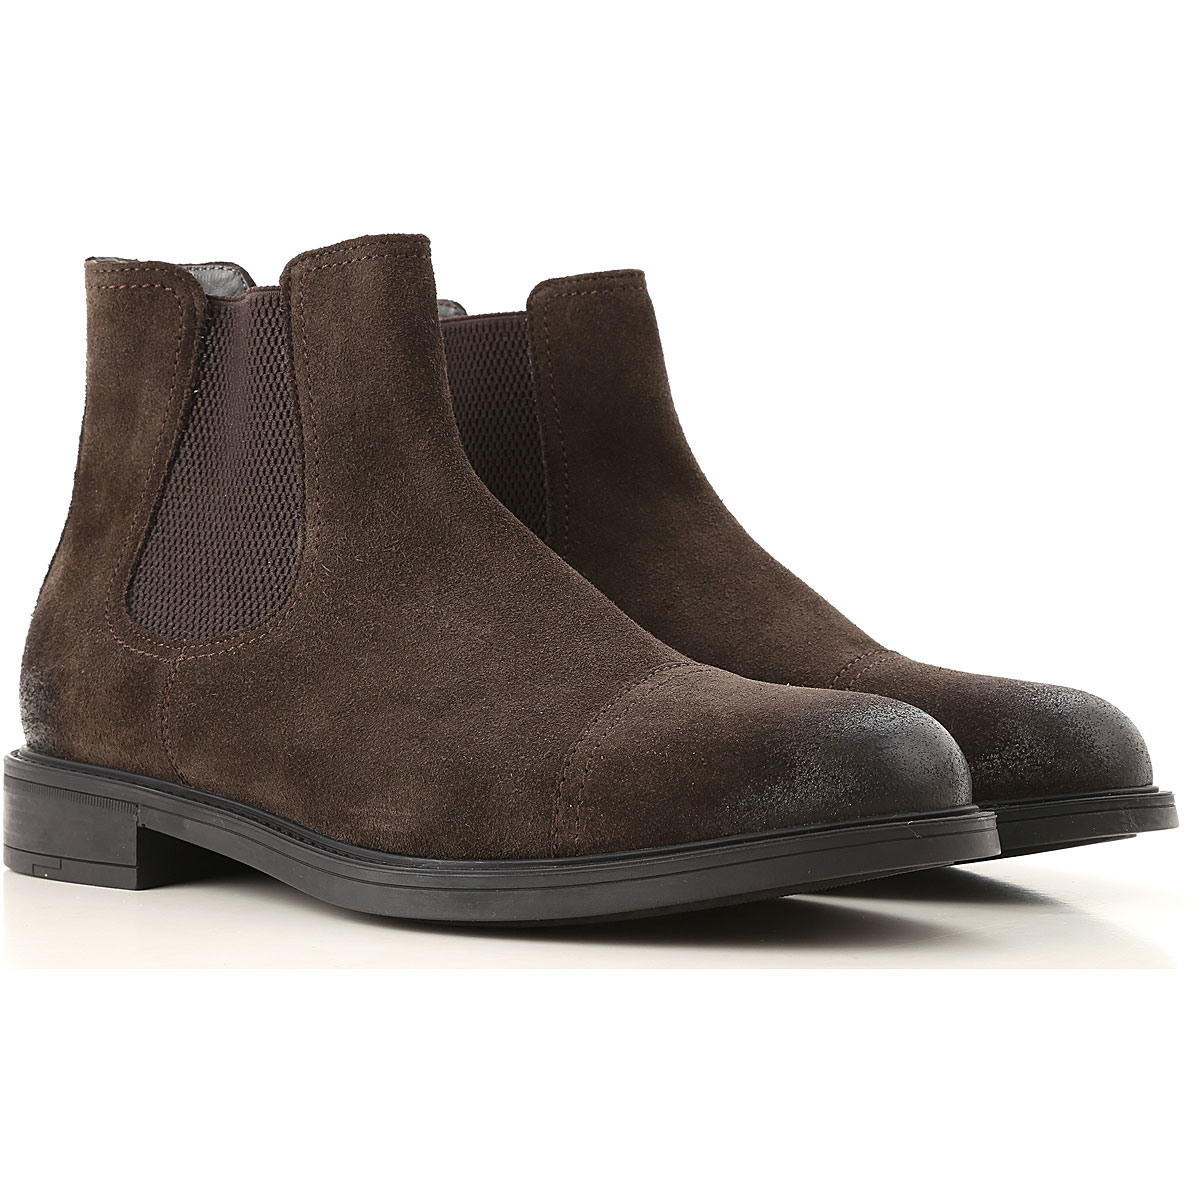 Moreschi Boots for Men, Booties On Sale, Ebony, Suede leather, 2019, 8 8.5